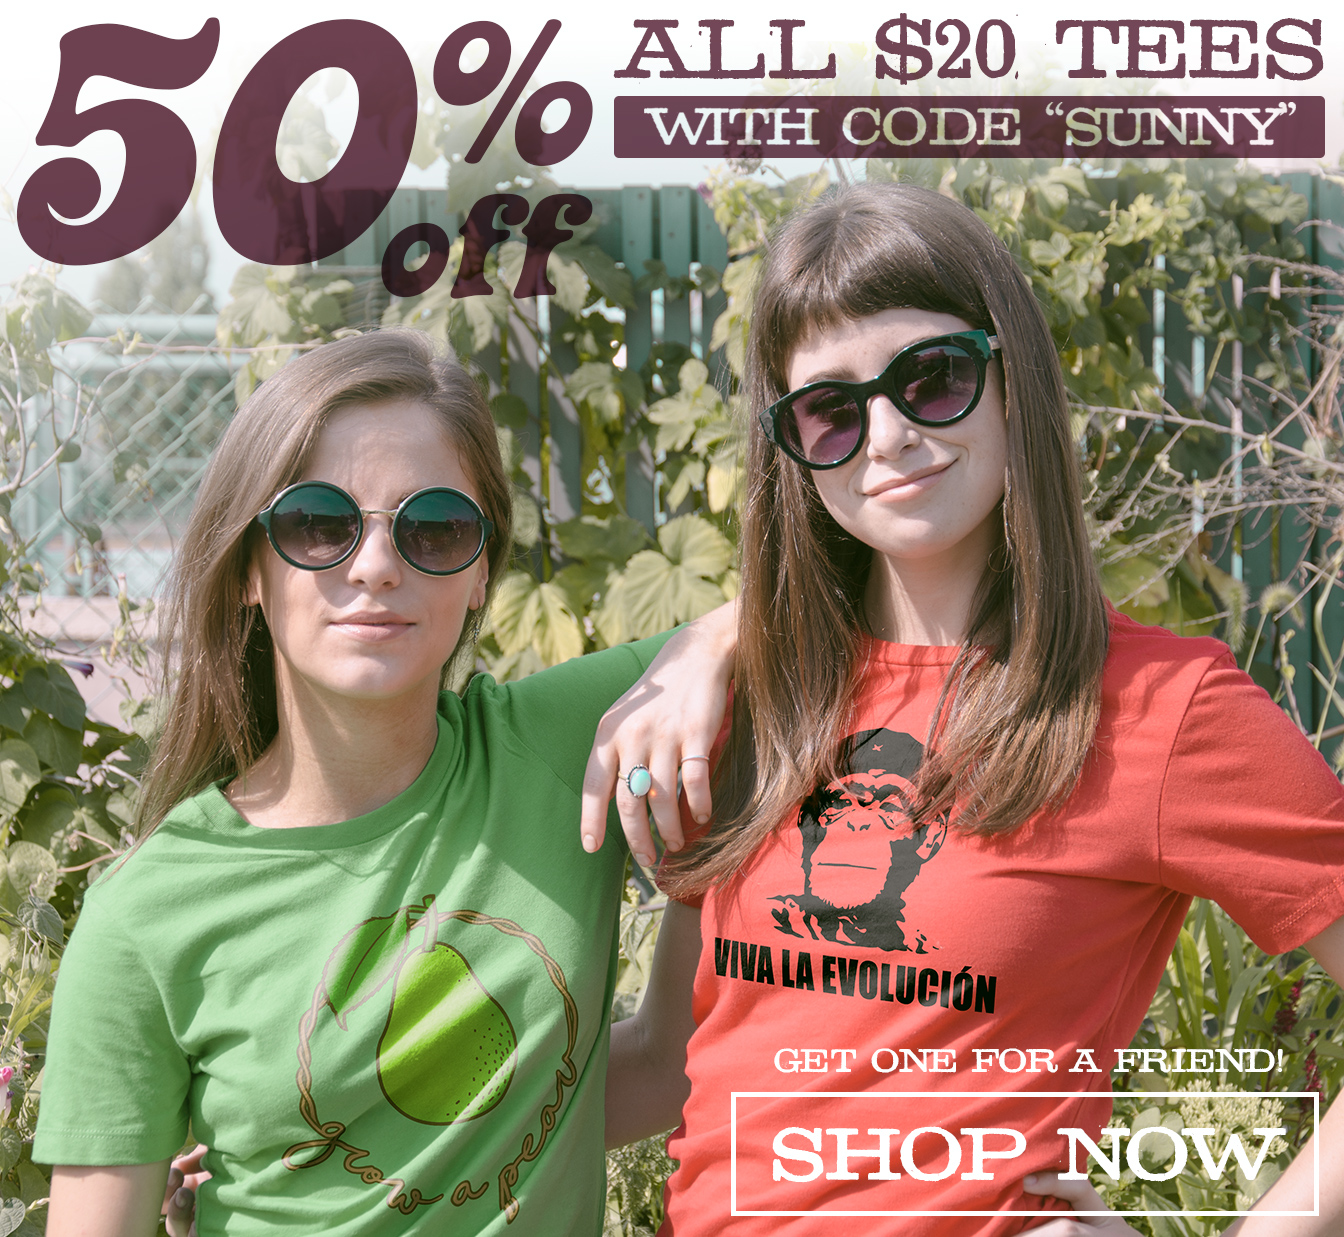 Get 50% off all $20 tees for a limited time with code SUNNY